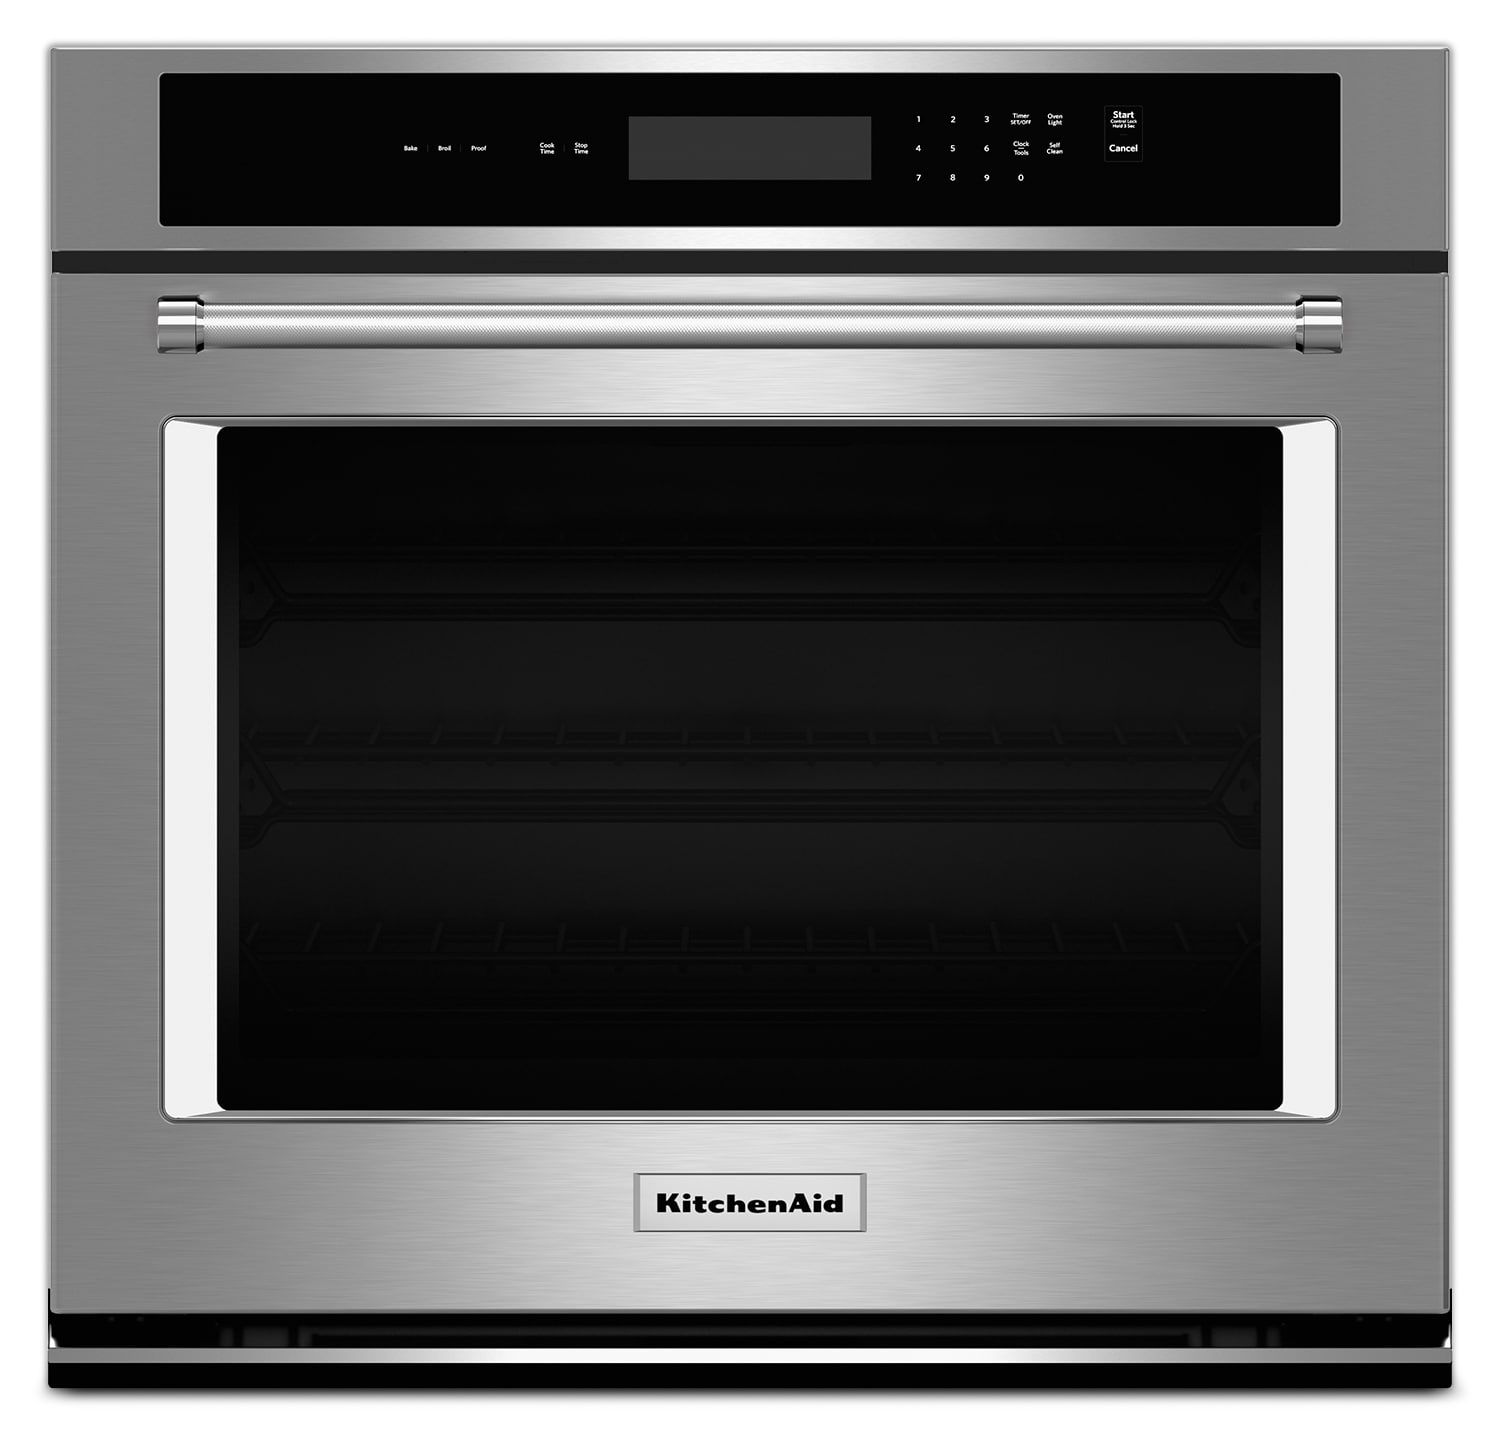 "KitchenAid 30"" Single Wall Oven with Even-Heat™ Thermal Bake and Broil – Stainless Steel"